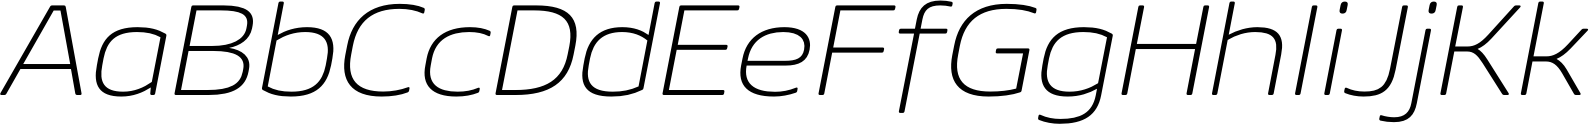 Geon Soft Expanded ExtraLight Italic Font